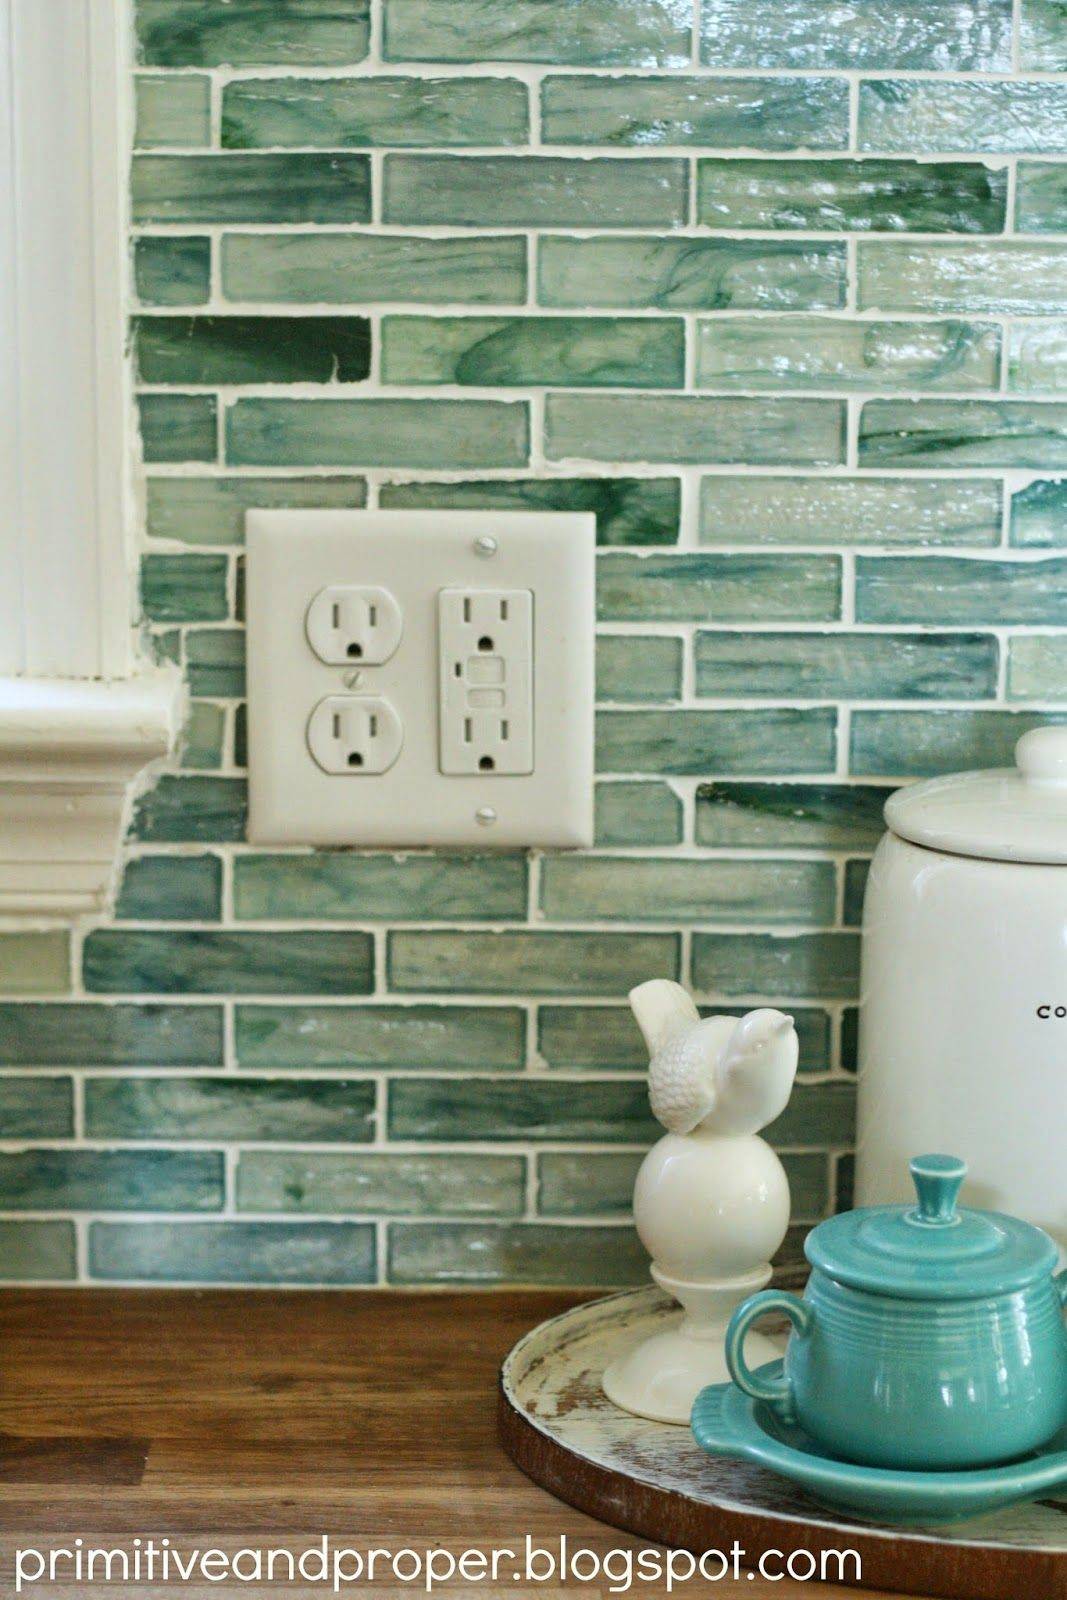 Primitive Proper Diy Recycled Glass Backsplash With The Tile Shop